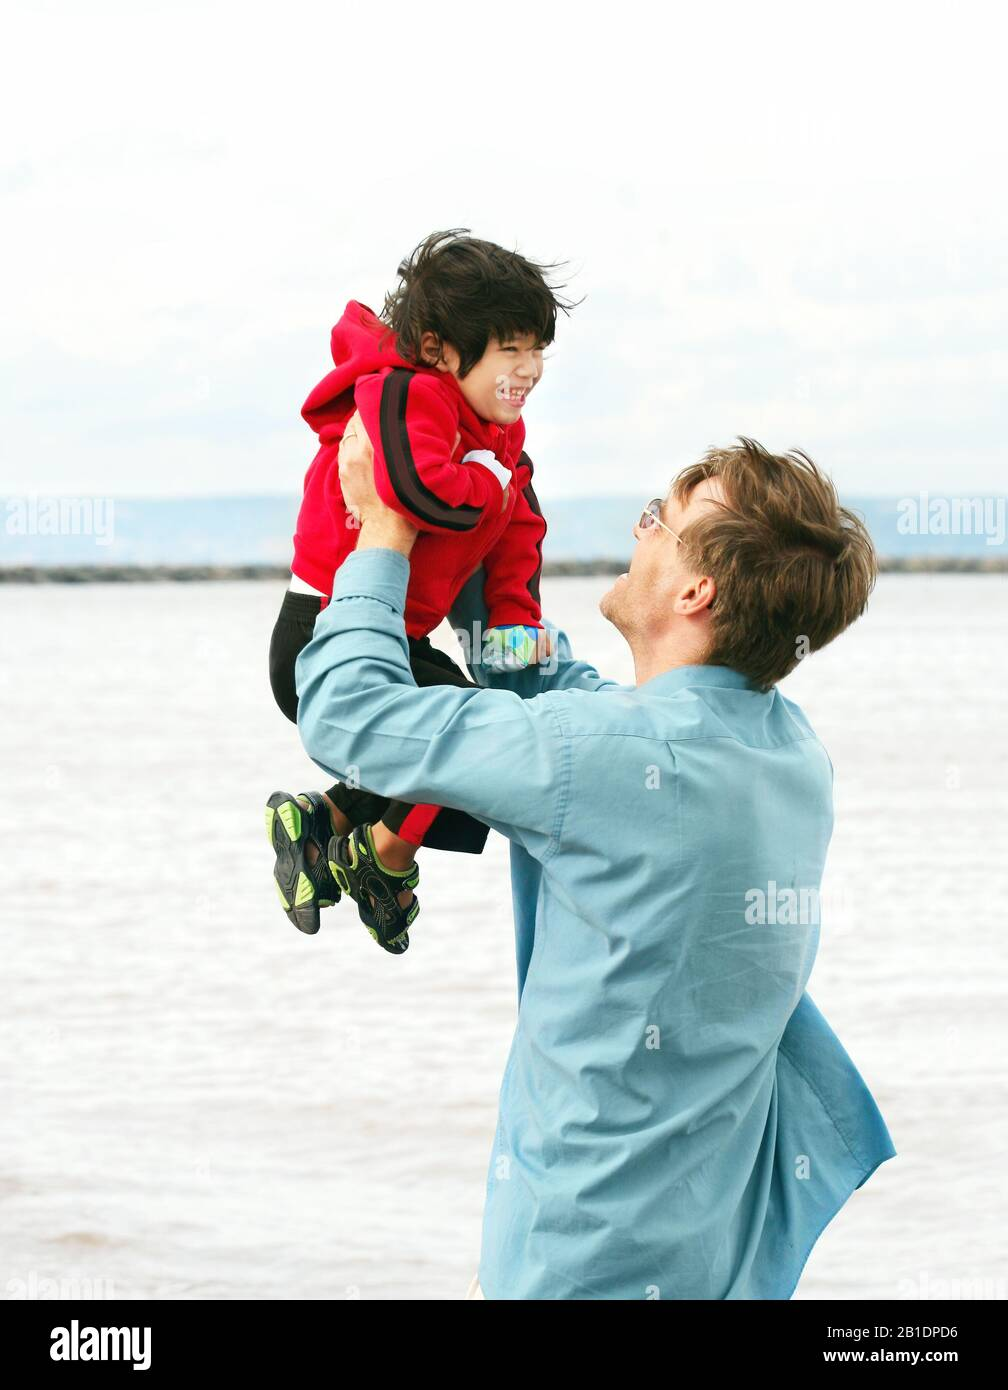 Caucasian father lifting up disabled little boy in his arms overhead outdoors by lake Stock Photo